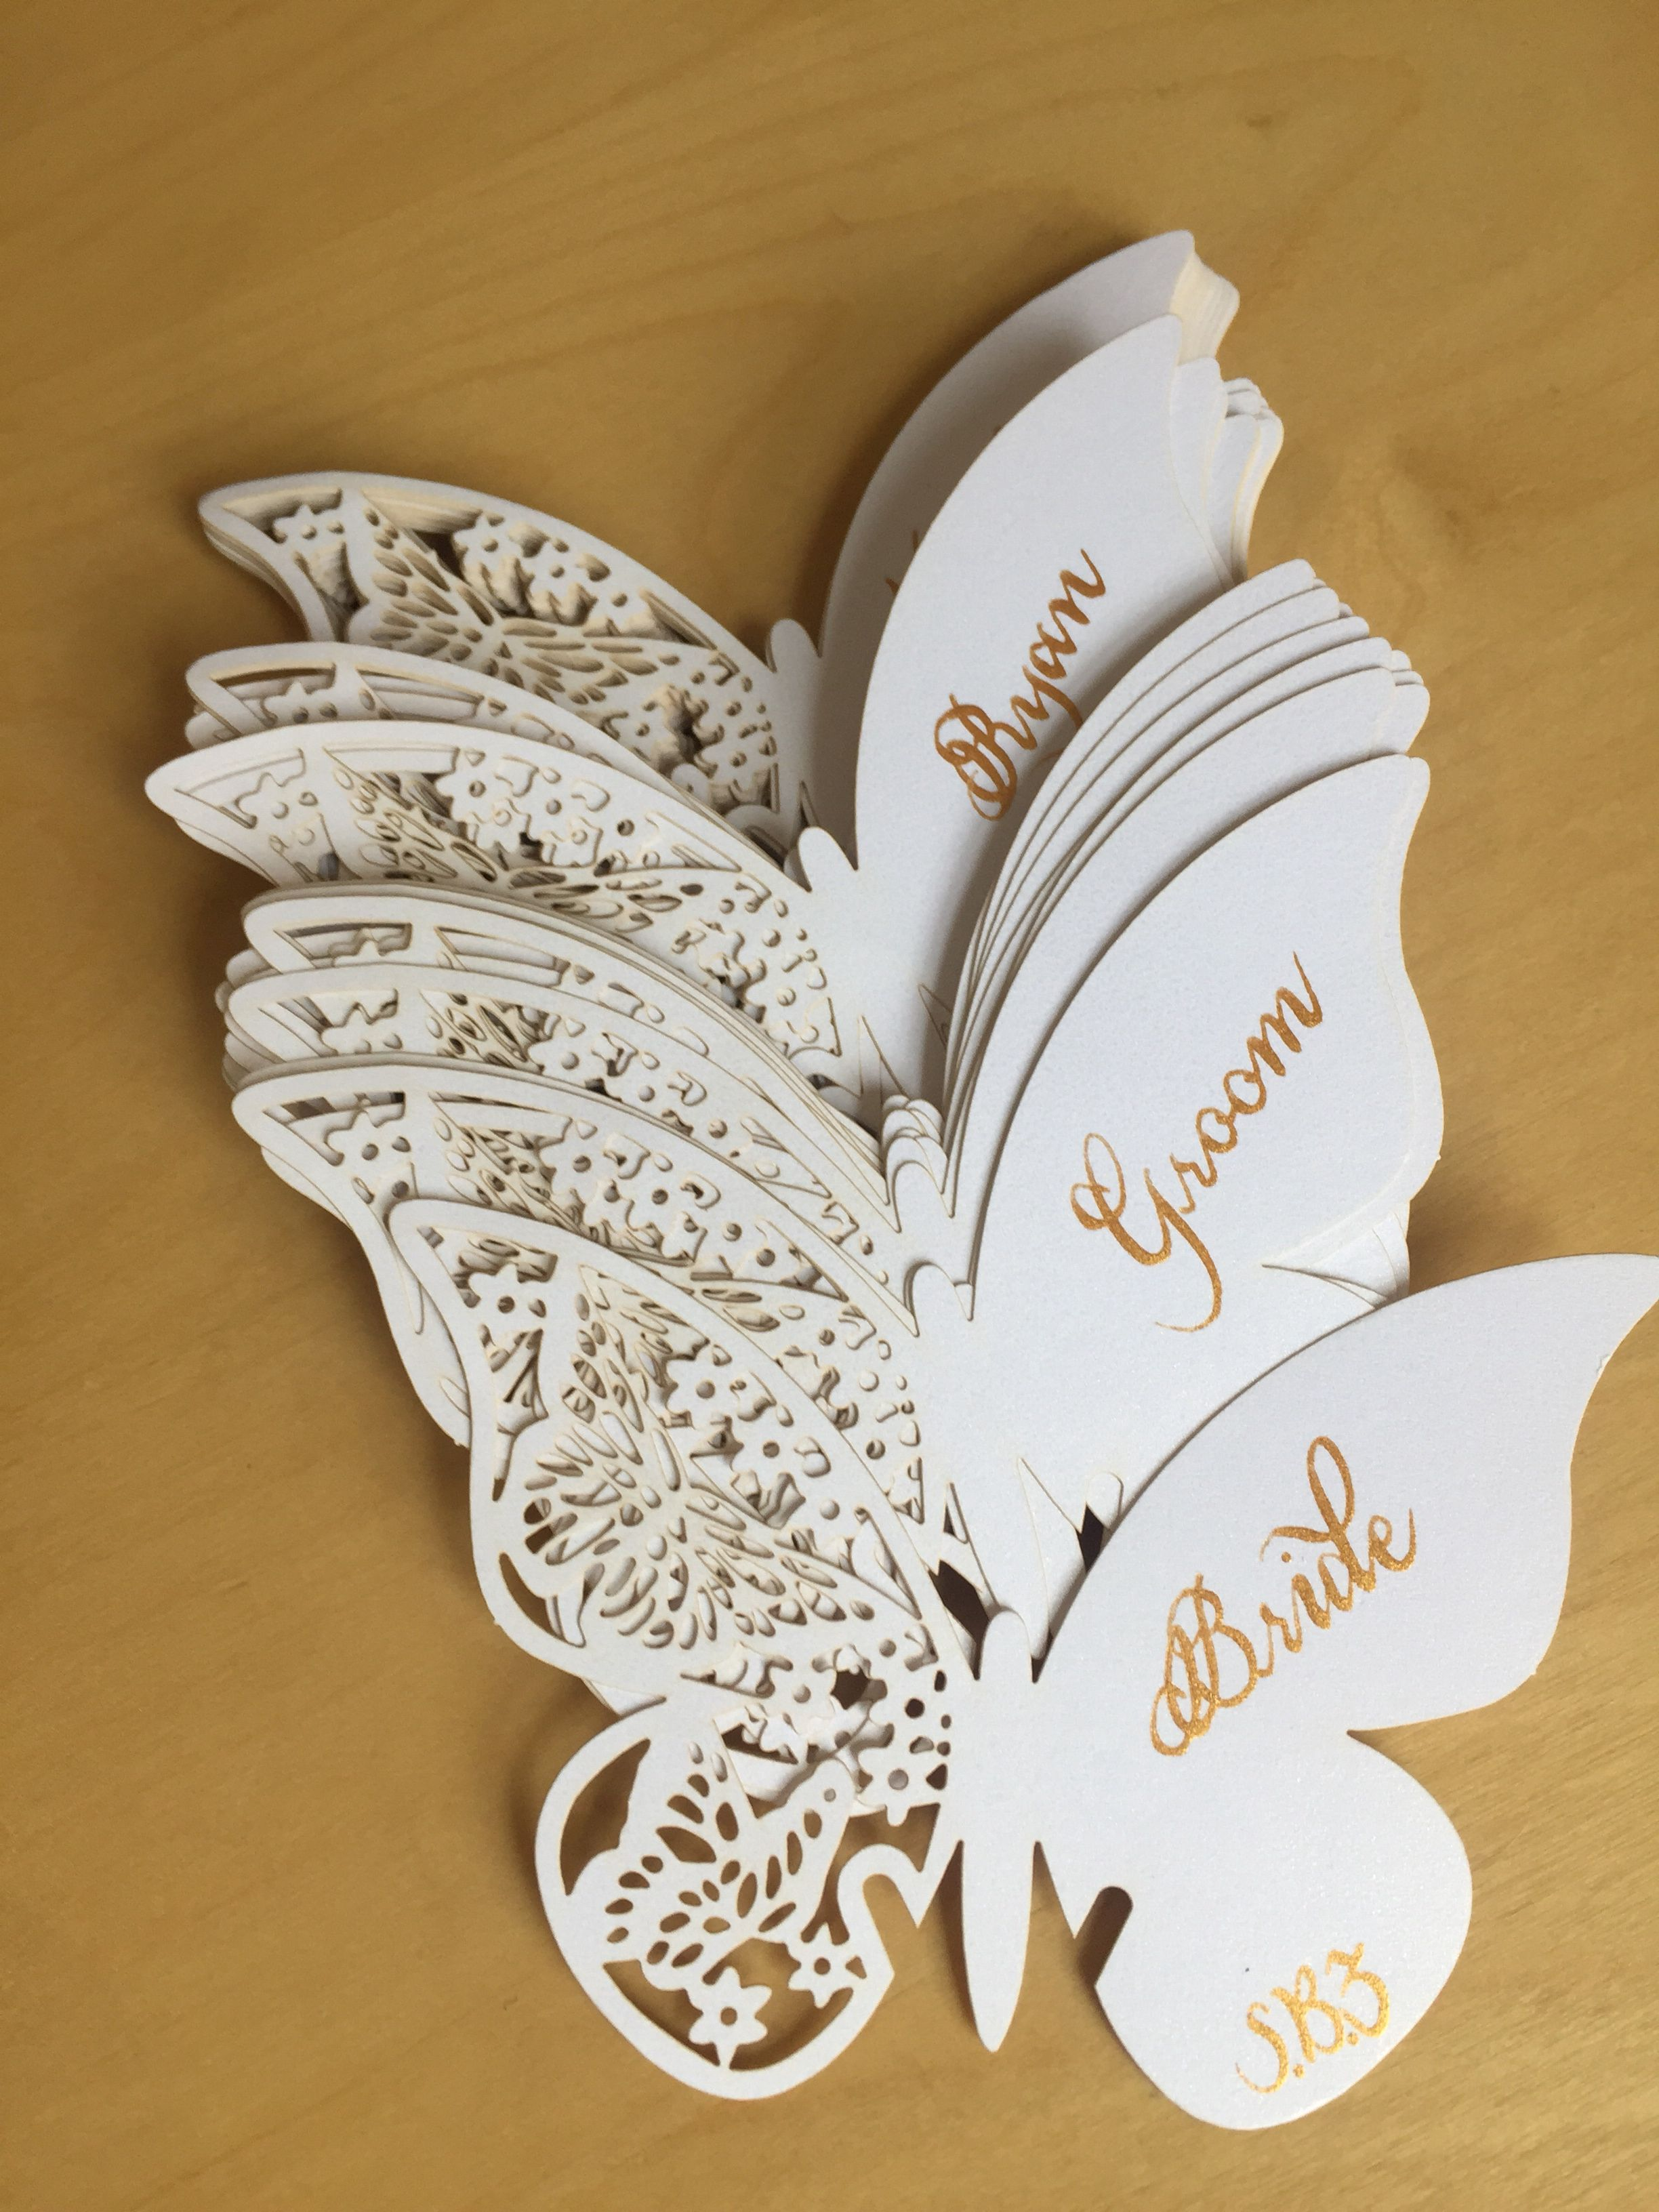 Pin on Wedding Calligraphy Place Cards